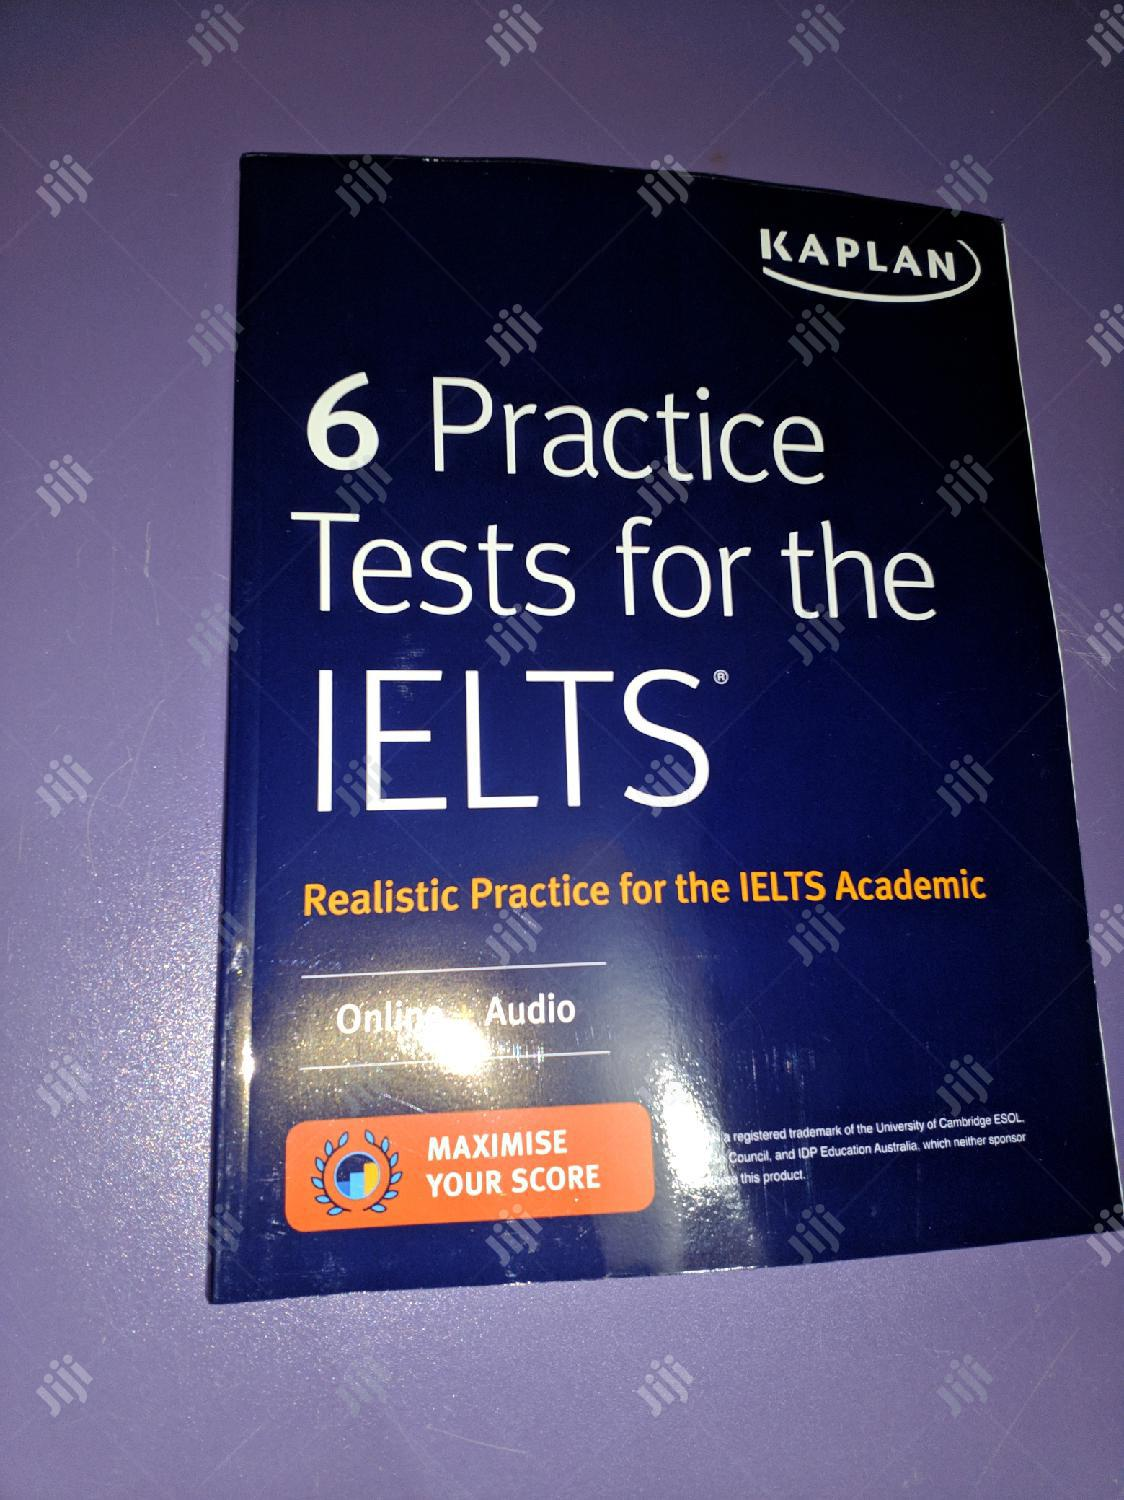 Archive: 6 Practice Tests For The IELTS